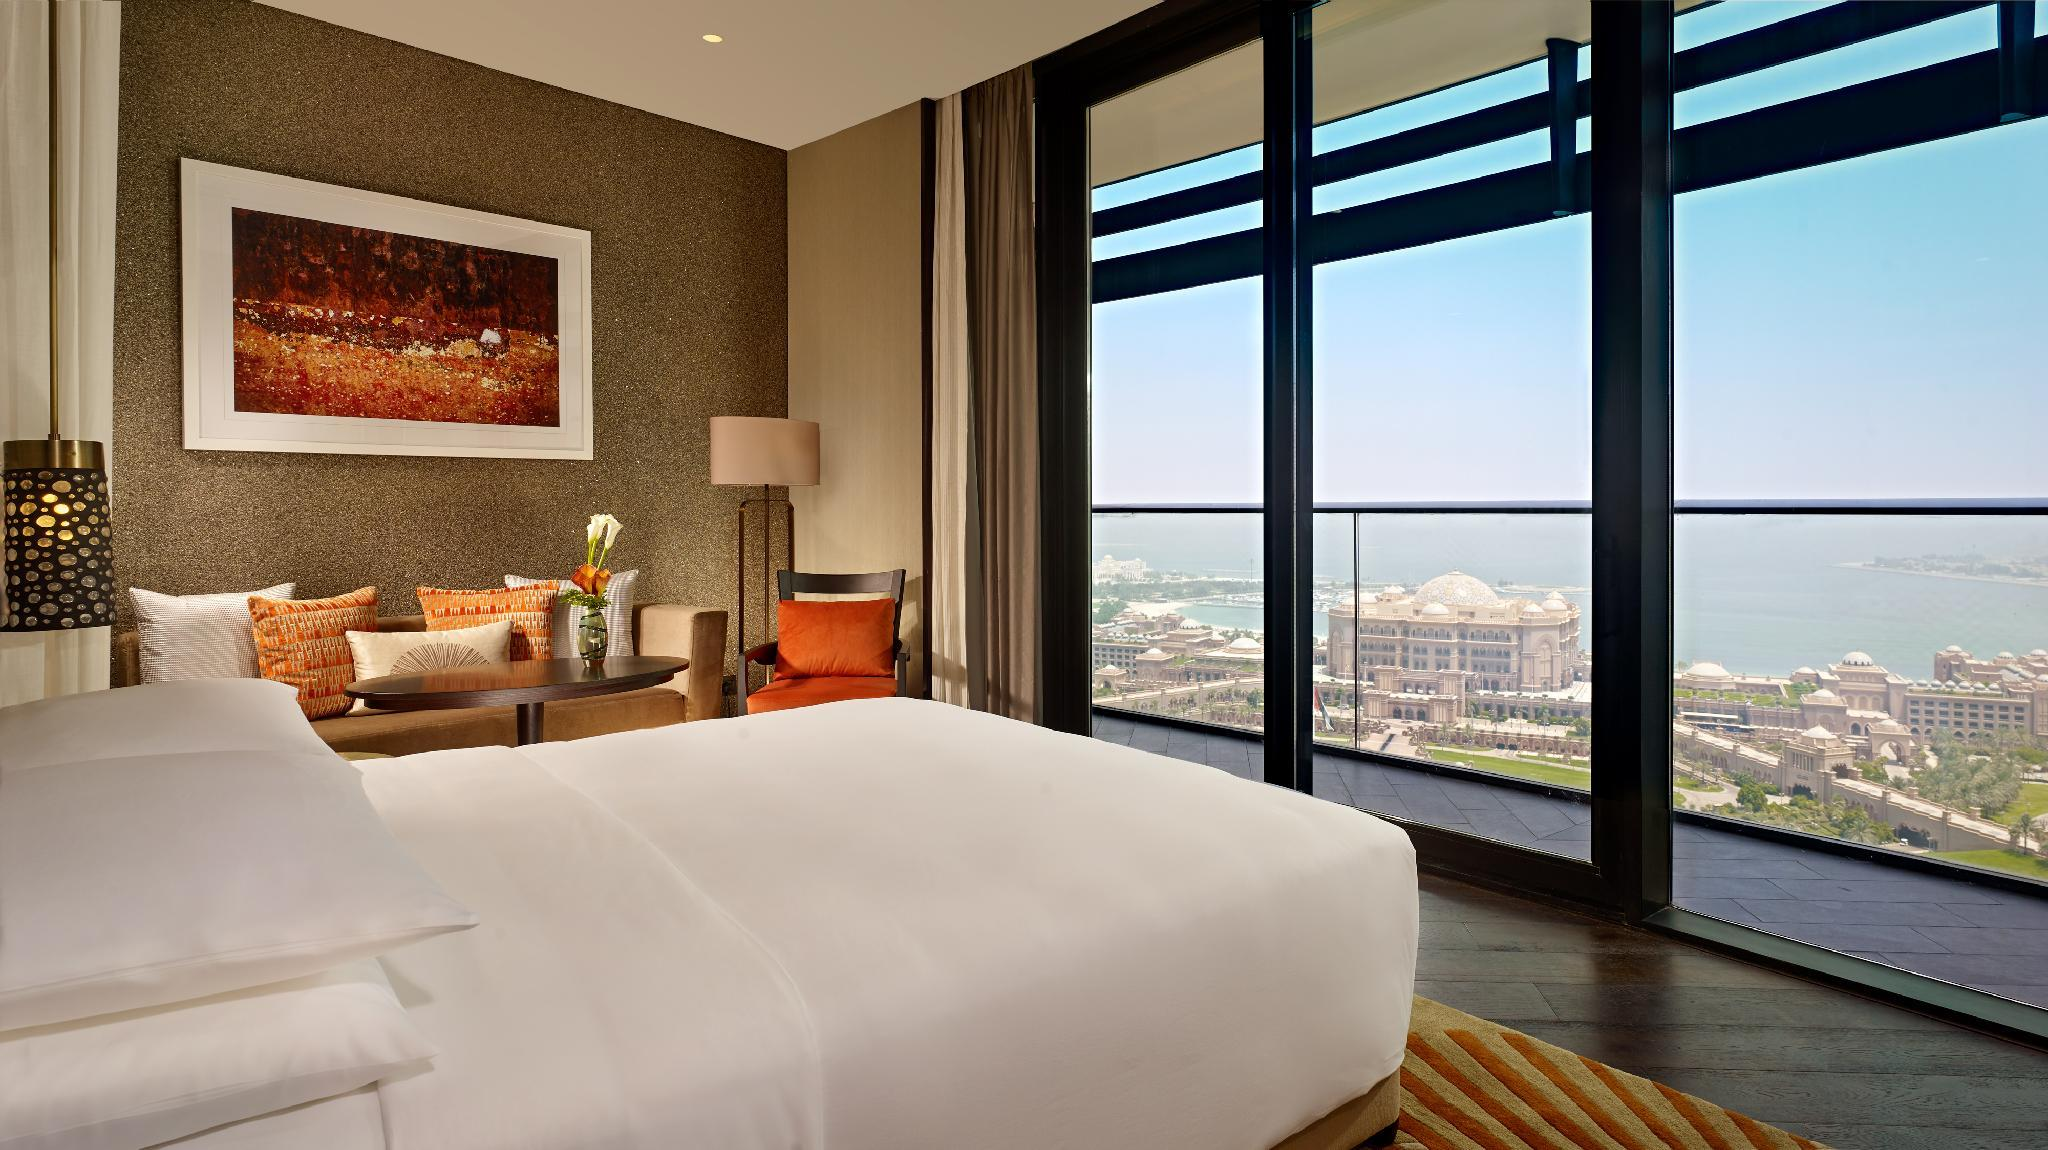 Grand Hyatt Abu Dhabi Hotel and Residences Emirates Pearl – Abu Dhabi 2